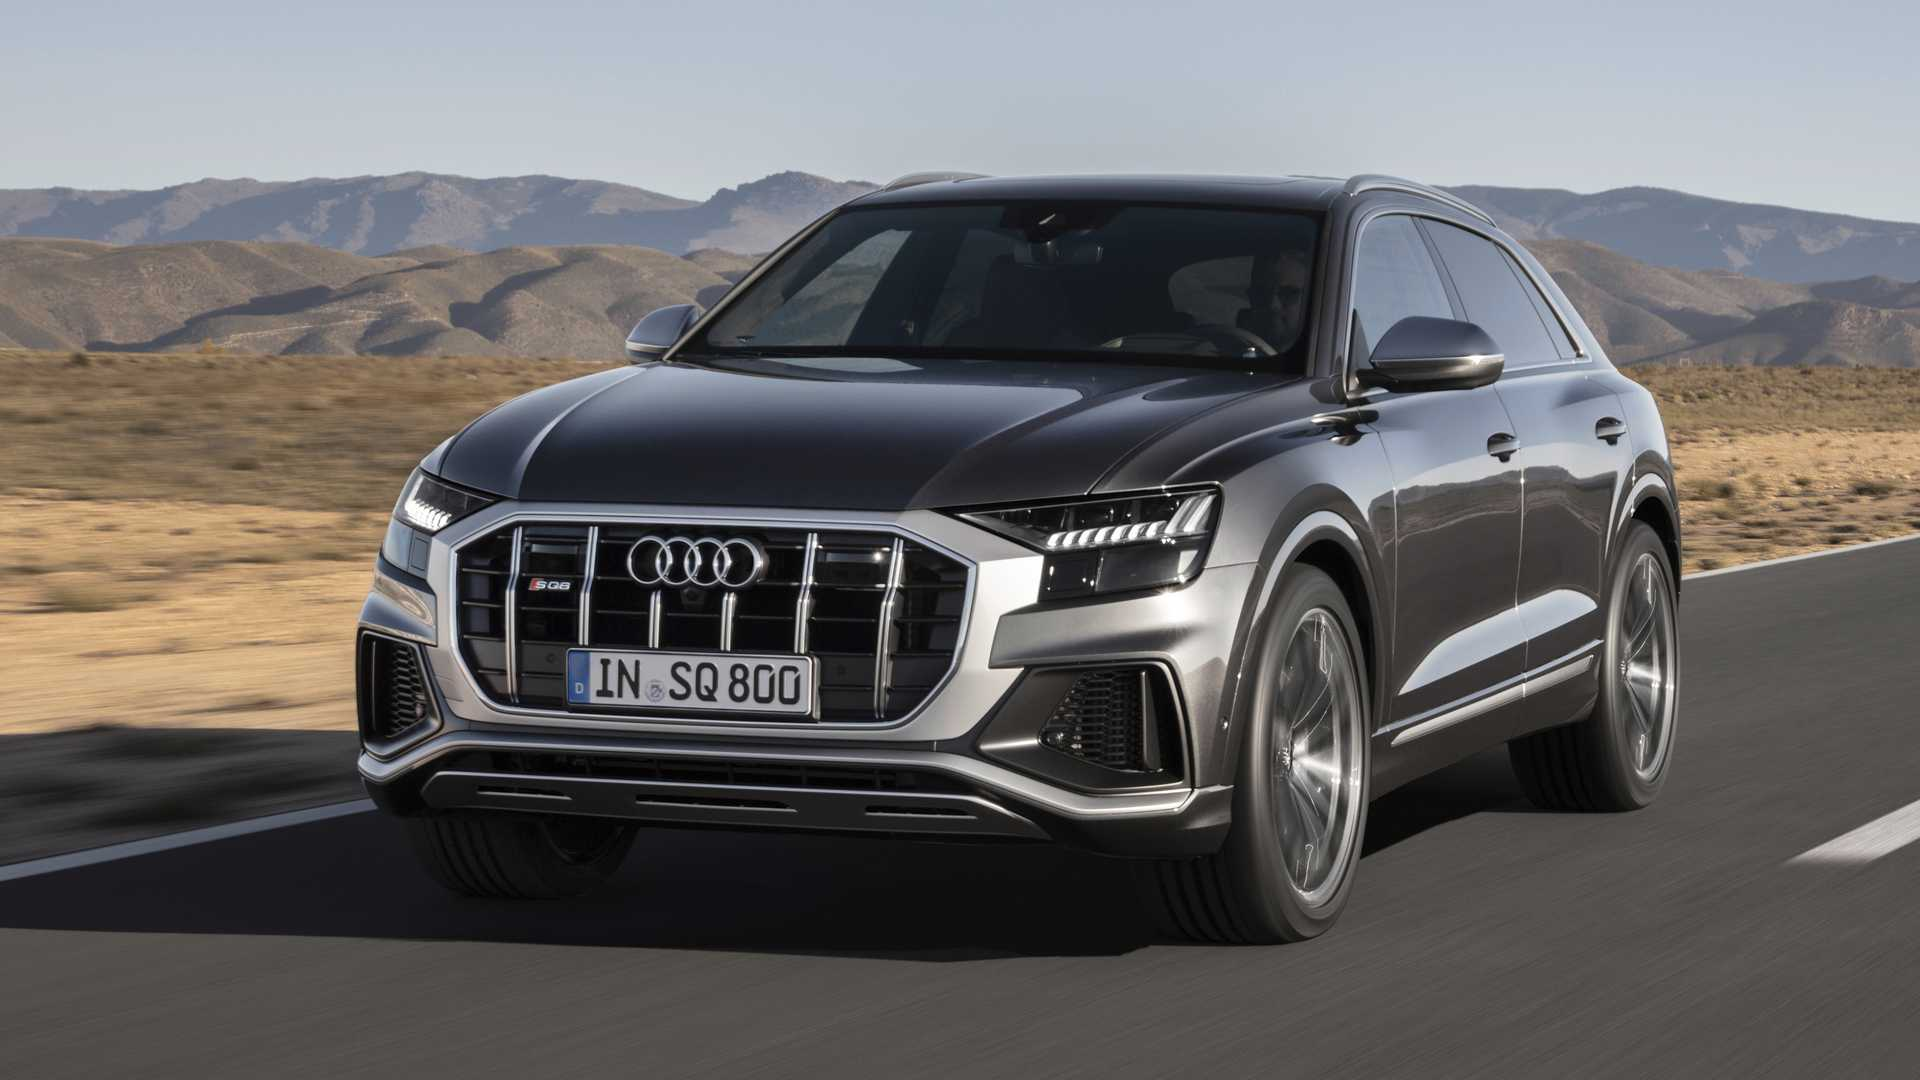 Powered by a 4.0-liter turbocharged diesel V8 pumping out 435 horsepower (324 kilowatts), the Audi SQ7 counts among the best-equipped diesel SUVs around